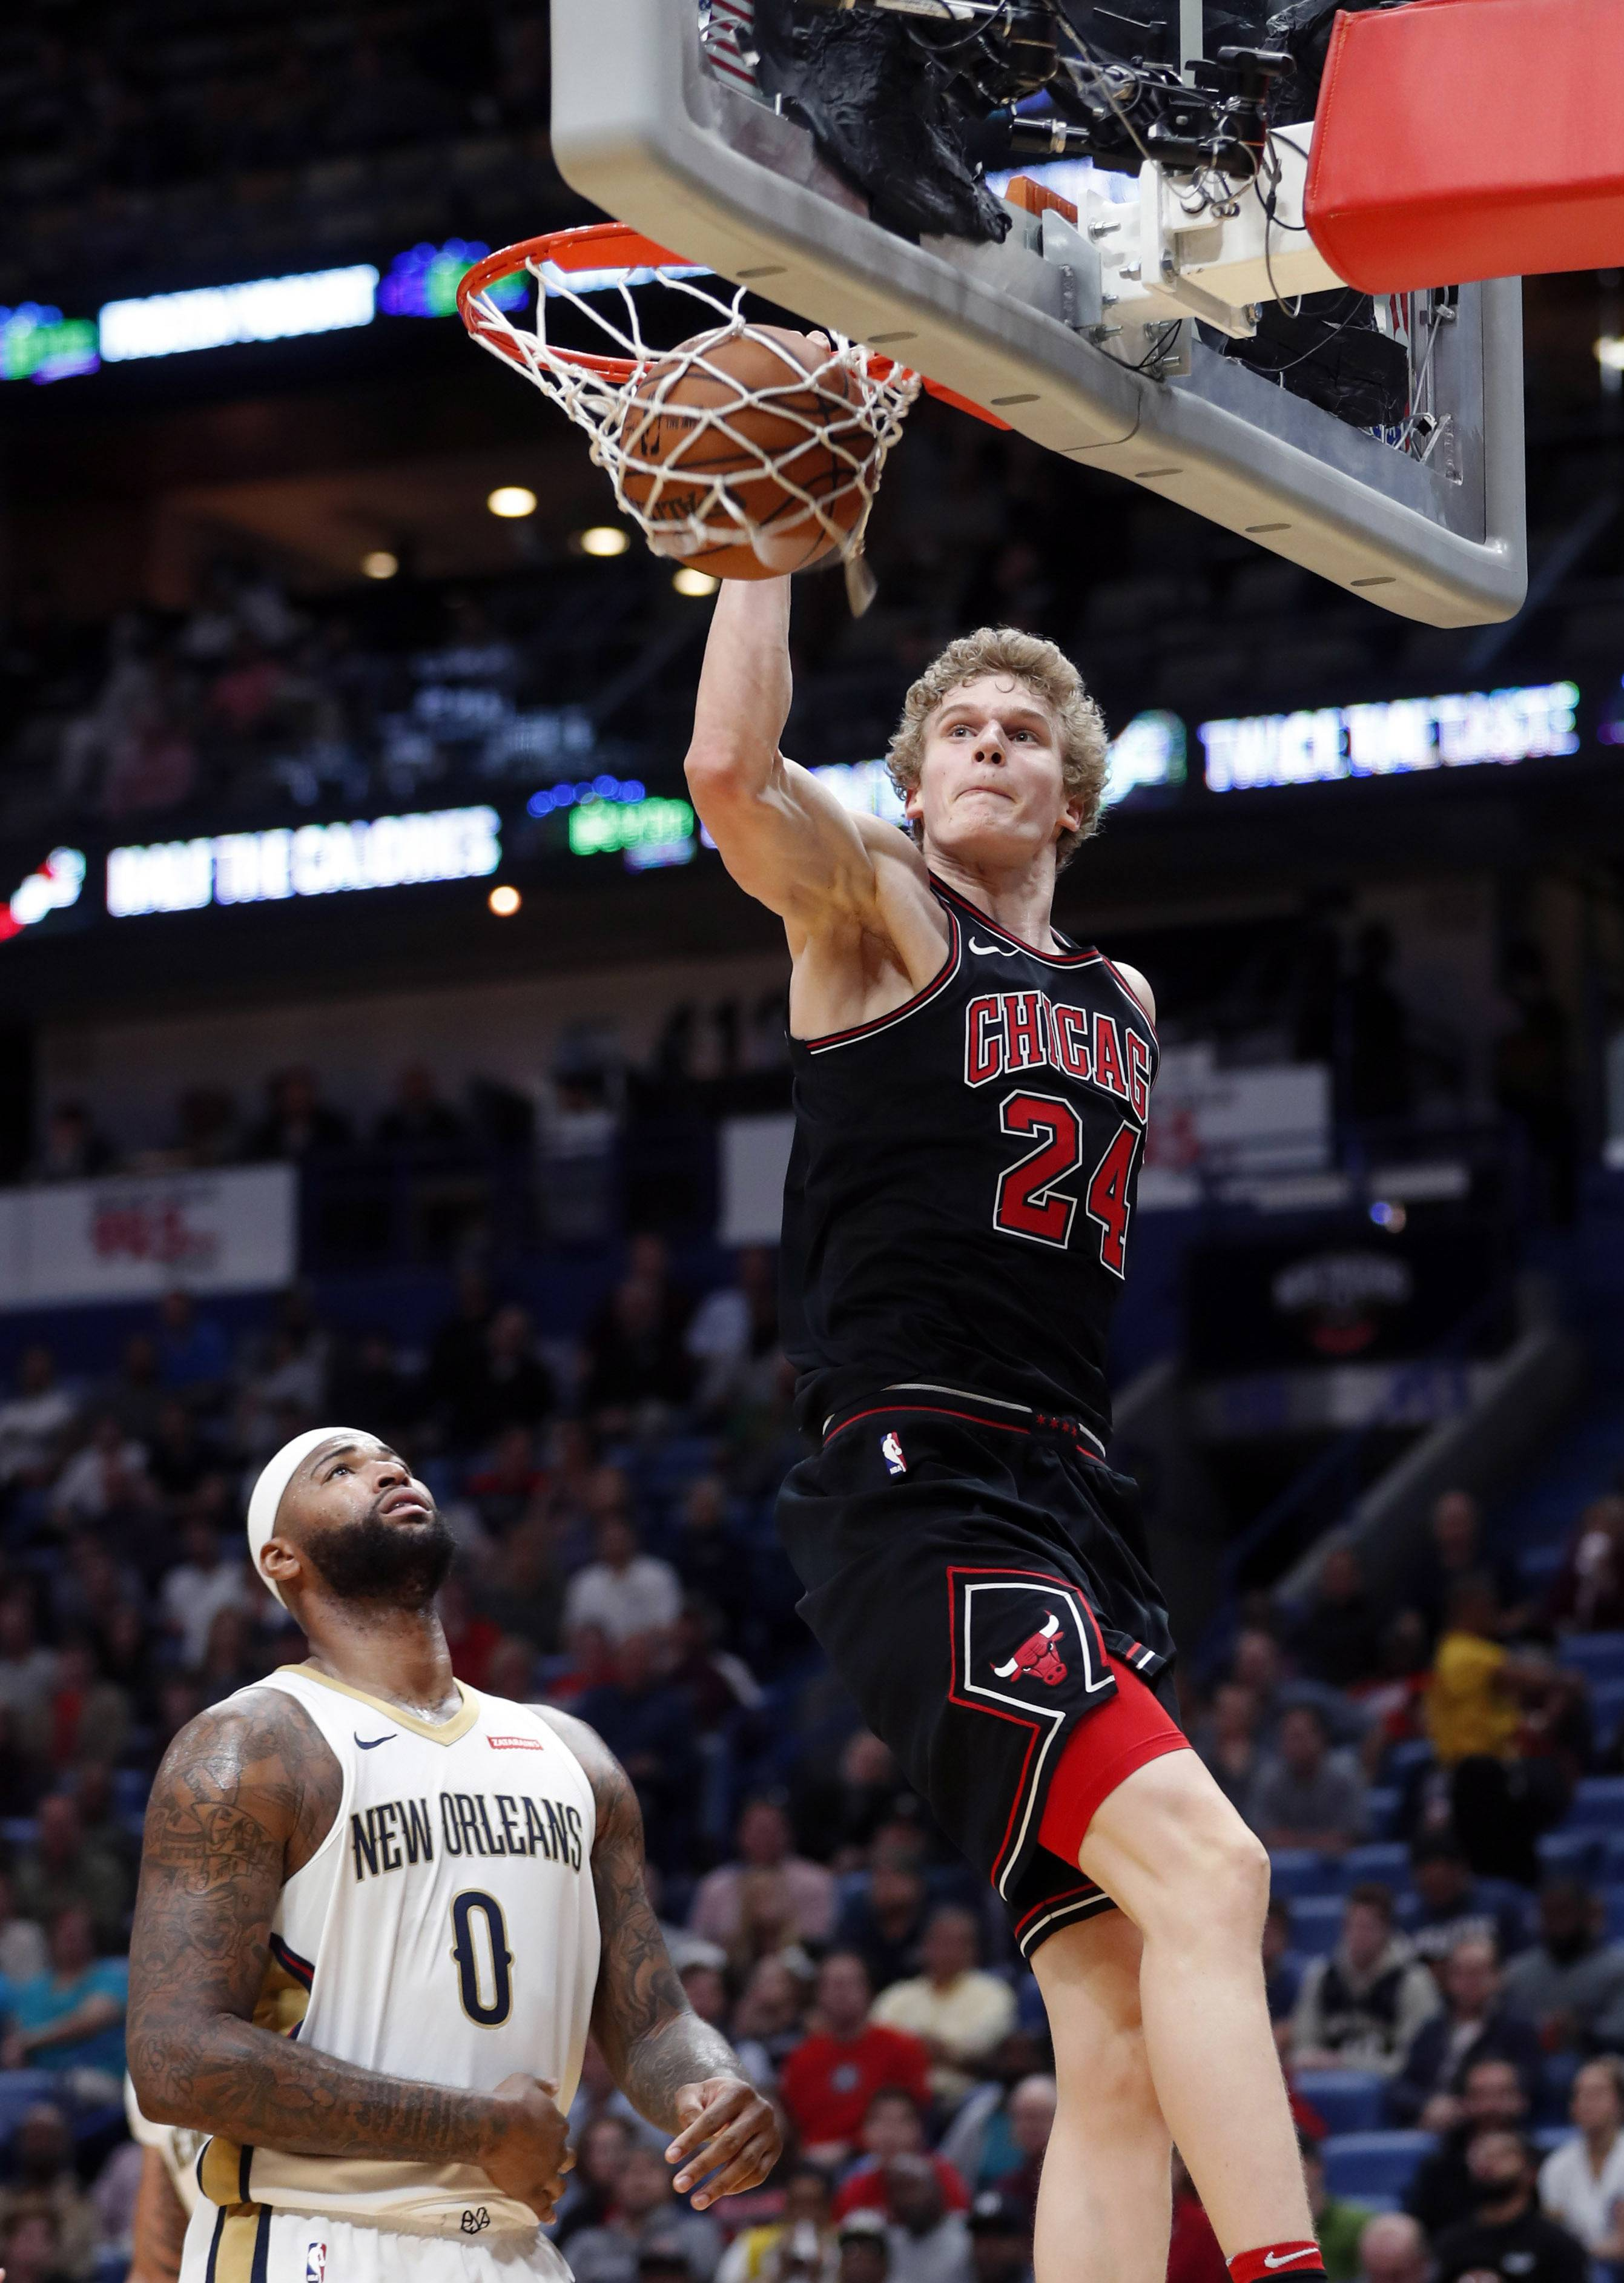 Chicago Bulls forward Lauri Markkanen (24) slam-dunks over New Orleans Pelicans center DeMarcus Cousins (0) in the first half of an NBA basketball game in New Orleans, Monday, Jan. 22, 2018.